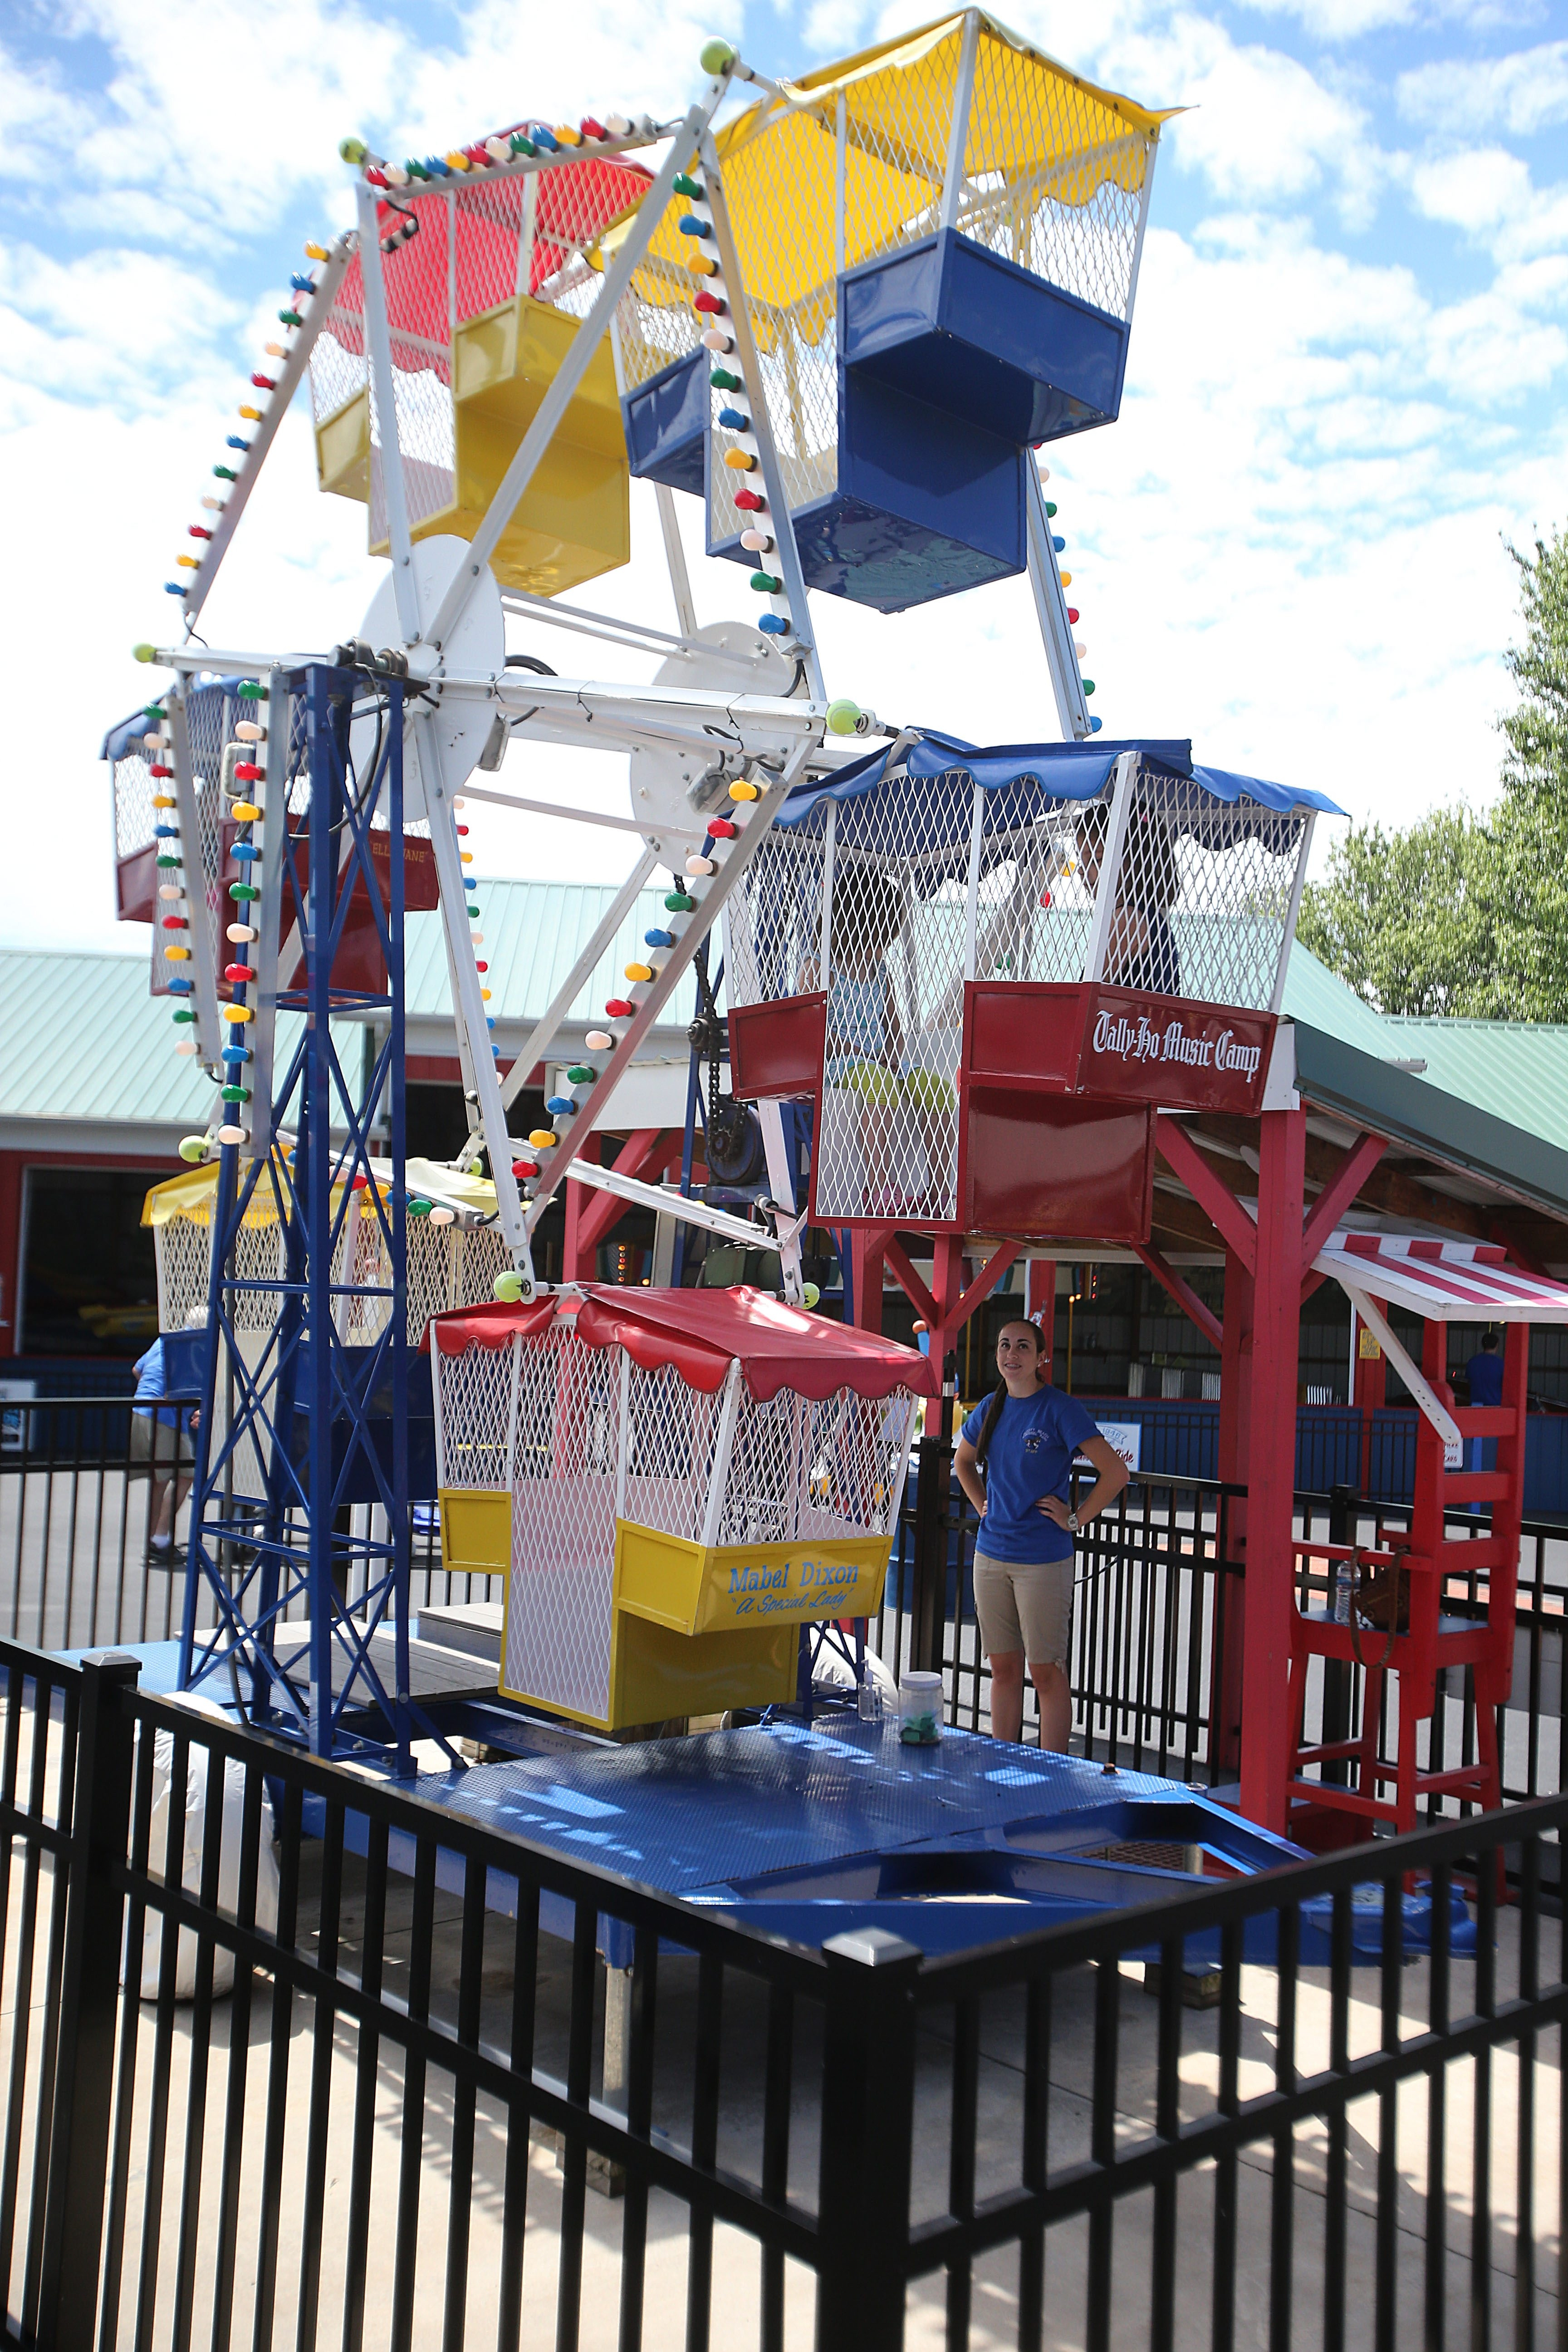 The Kiddie Ferris Wheel is just one of the attractions  at the Olcott Beach Carousel Park,  which will celebrate its 12th anniversay today with a variety of events.